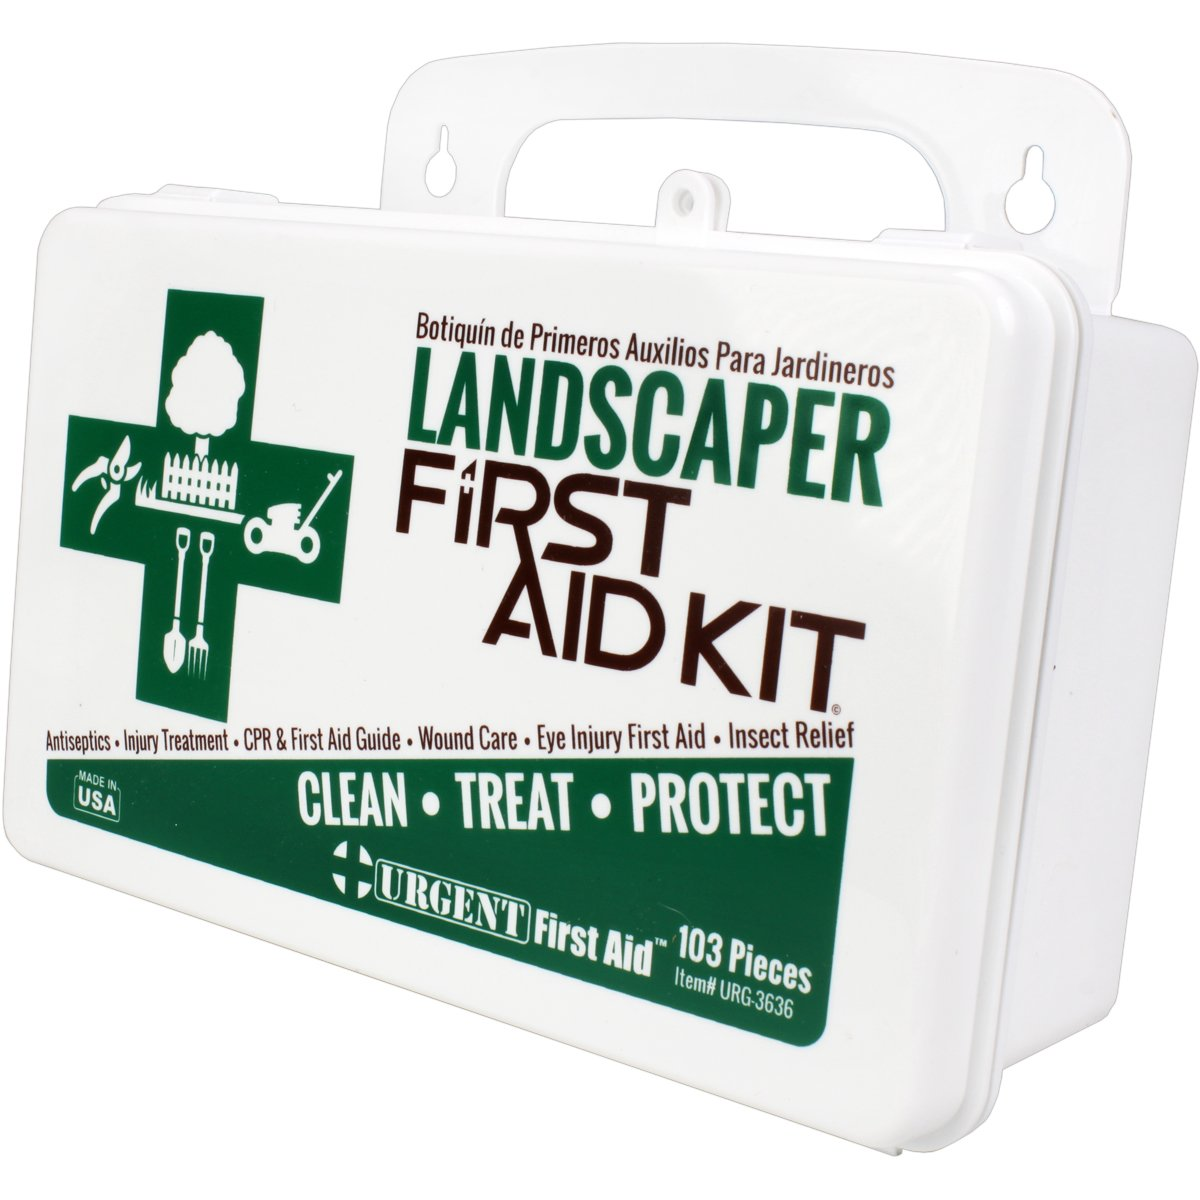 Landscaper & Tree Trimming First Aid Kit, OSHA Compliant, 10 Unit, 103 Piece, Plastic Case with Gasket to keep out moisture and dust - be OSHA Compliant: Special Extra first aid item content, too by Urgent First Aid (Image #8)